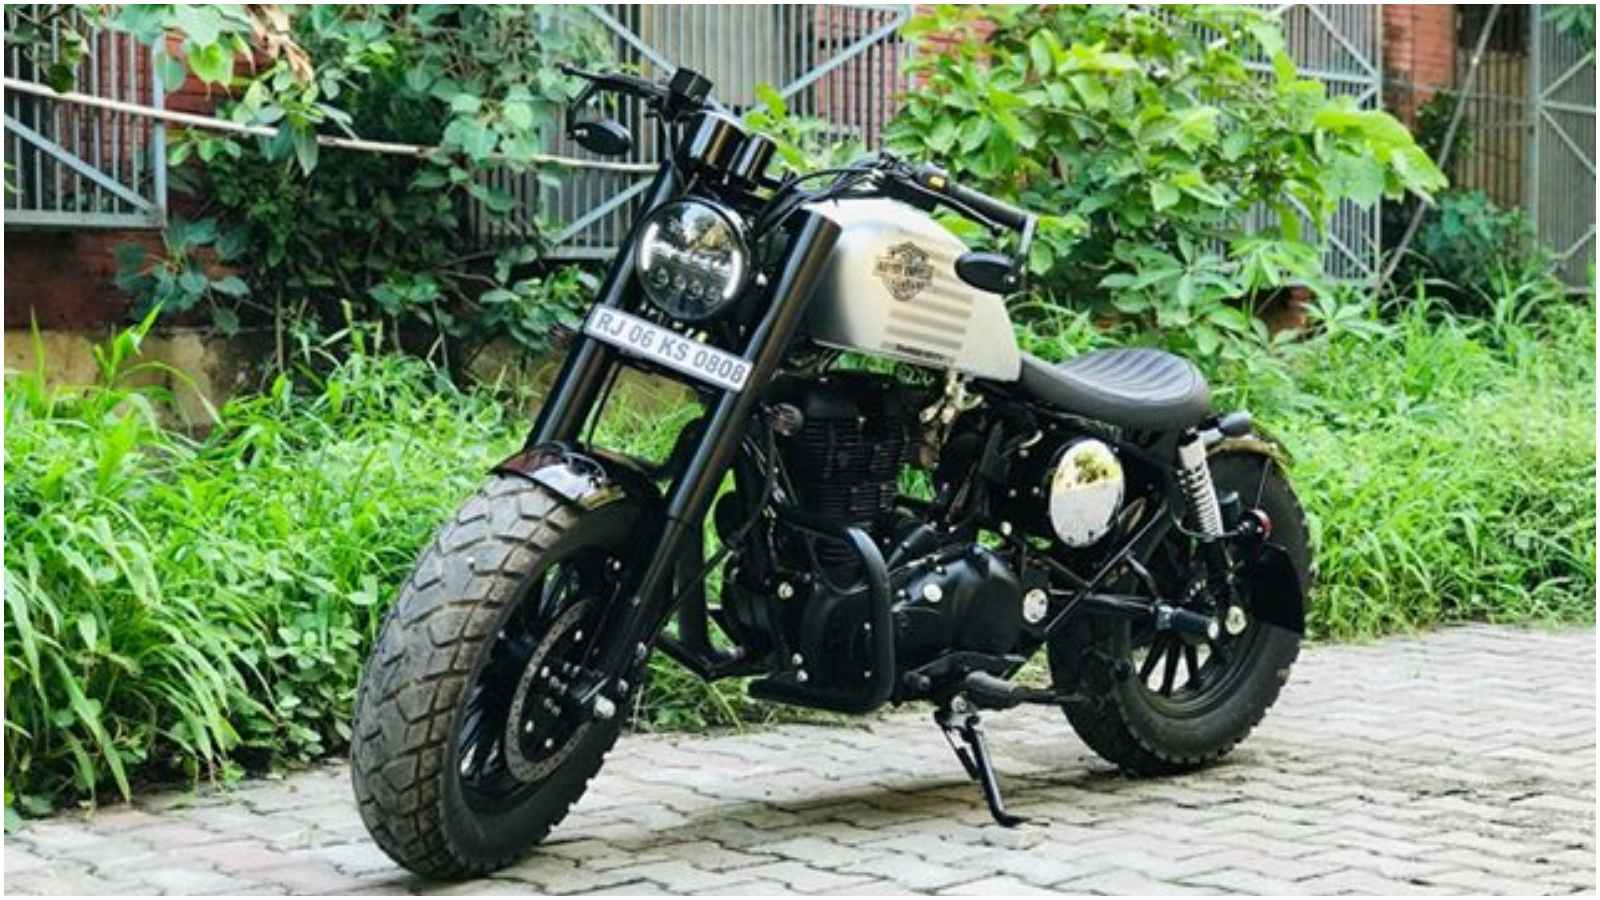 This Royal Enfield Impersonates A Harley Davidson Quite Accurately